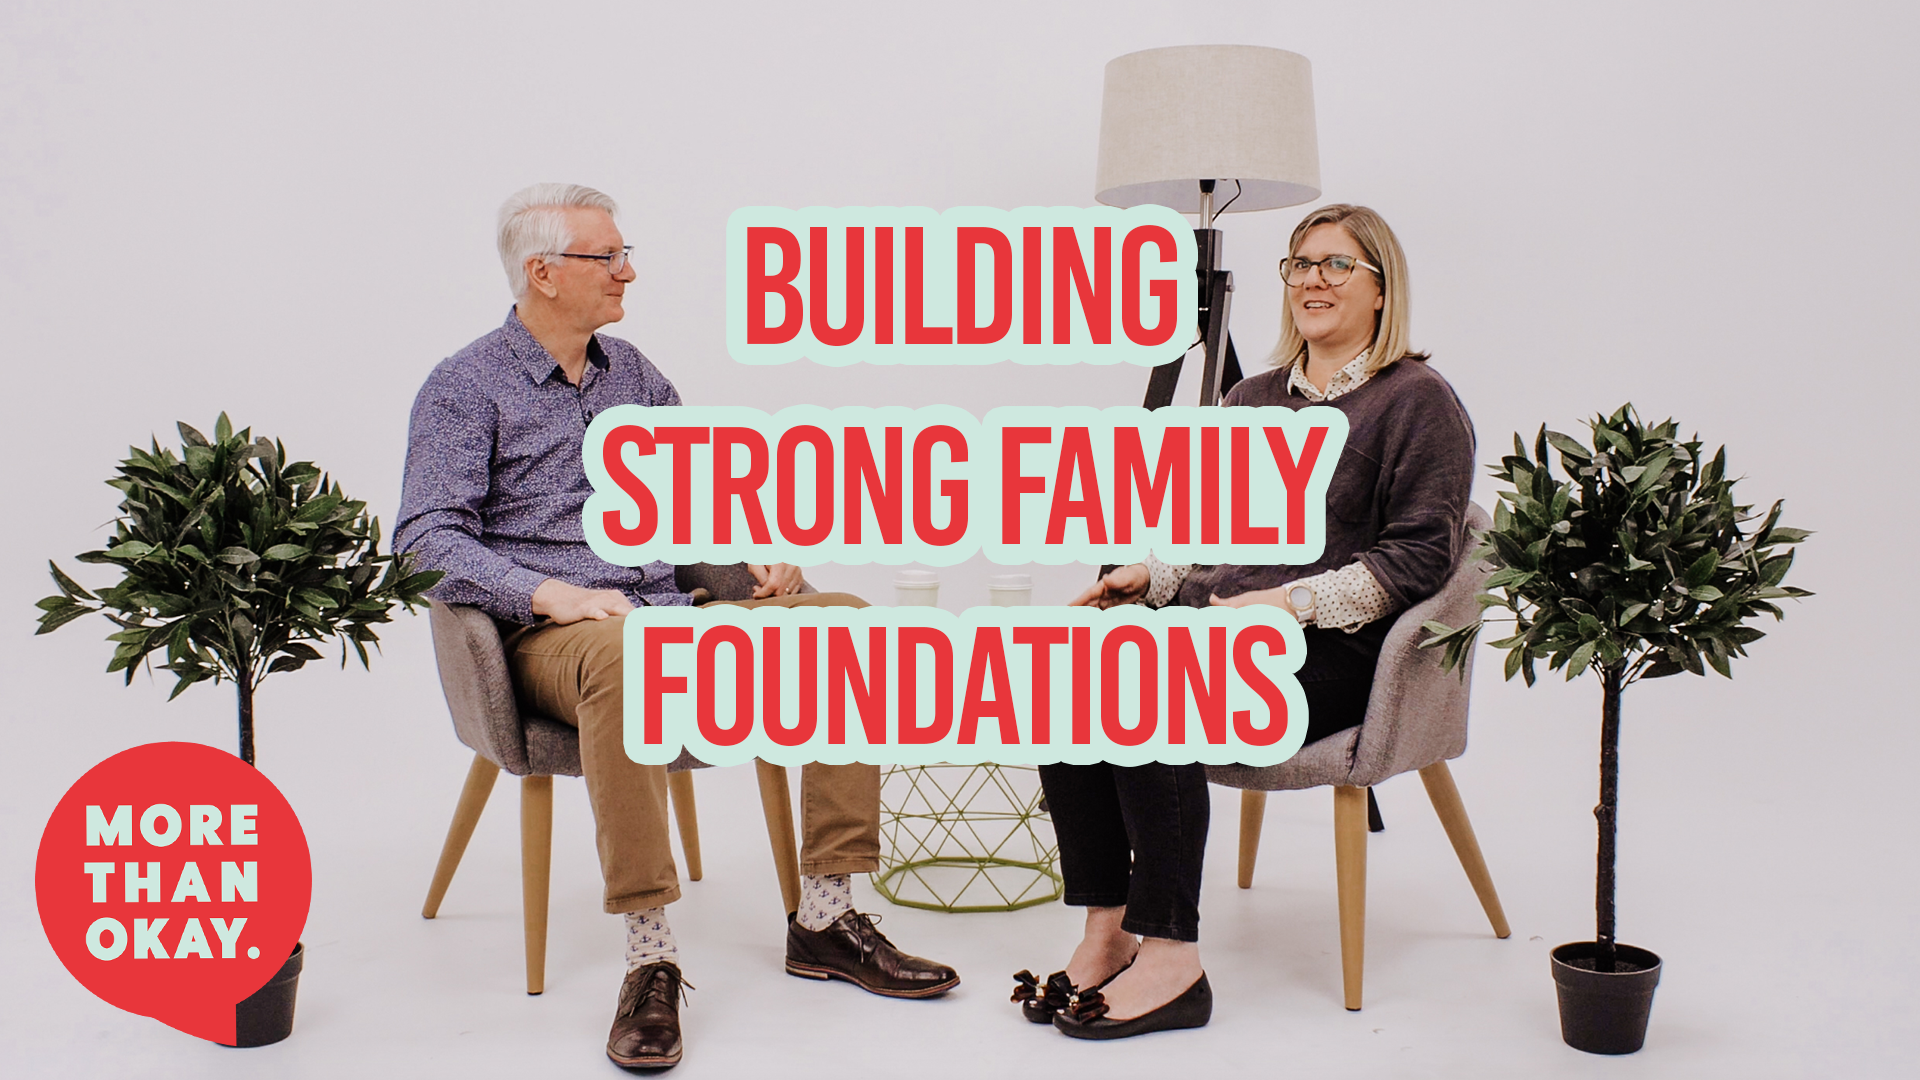 Building Strong Family Foundations